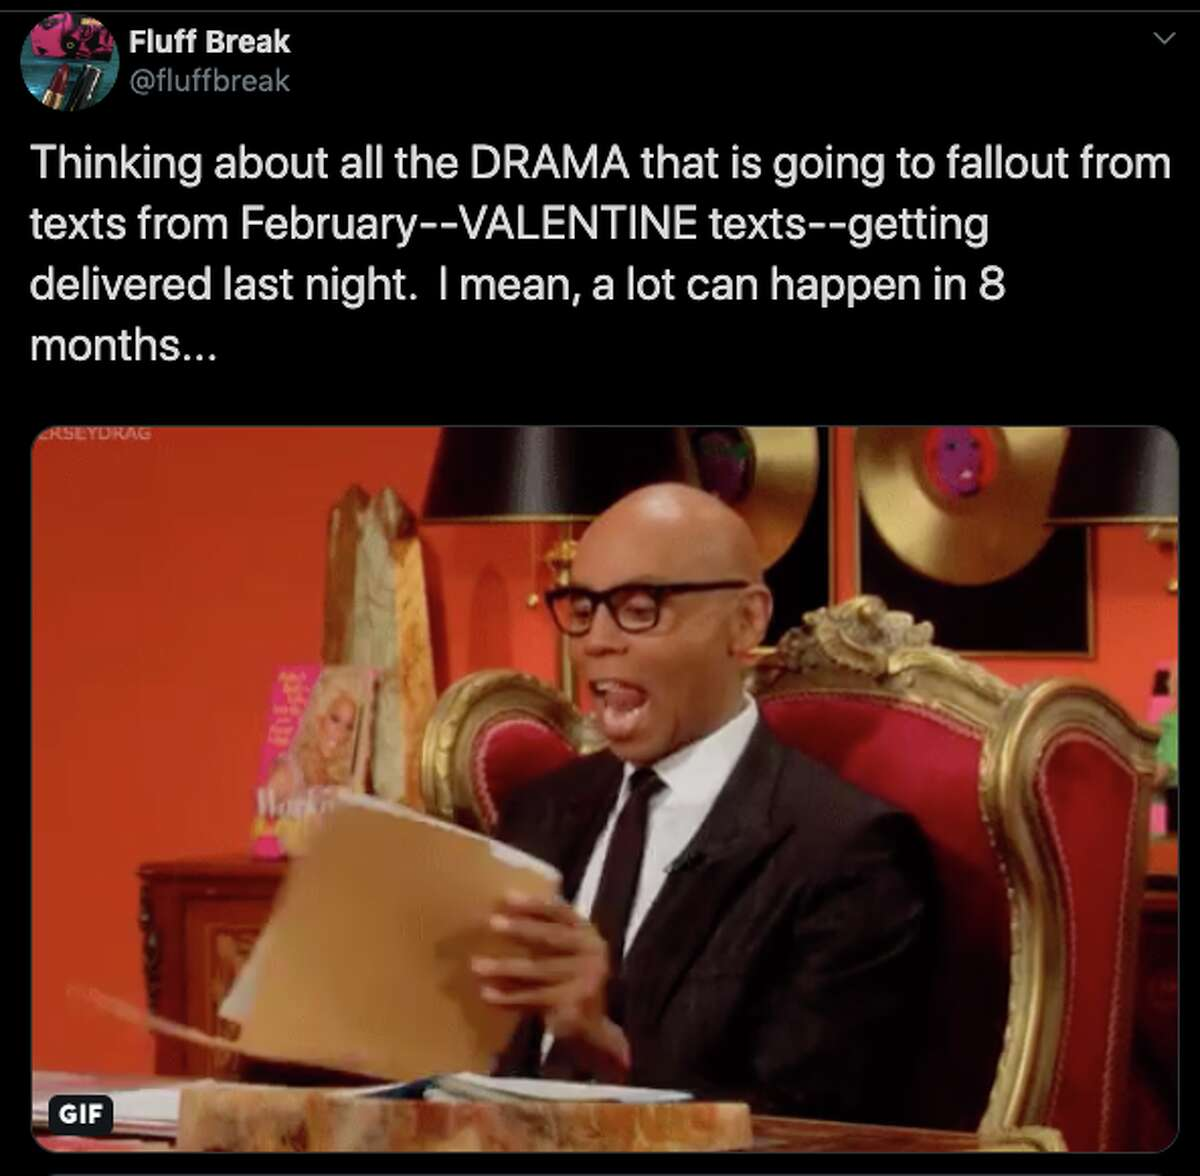 Twitter users complain about the Valentine's Day text glitch.